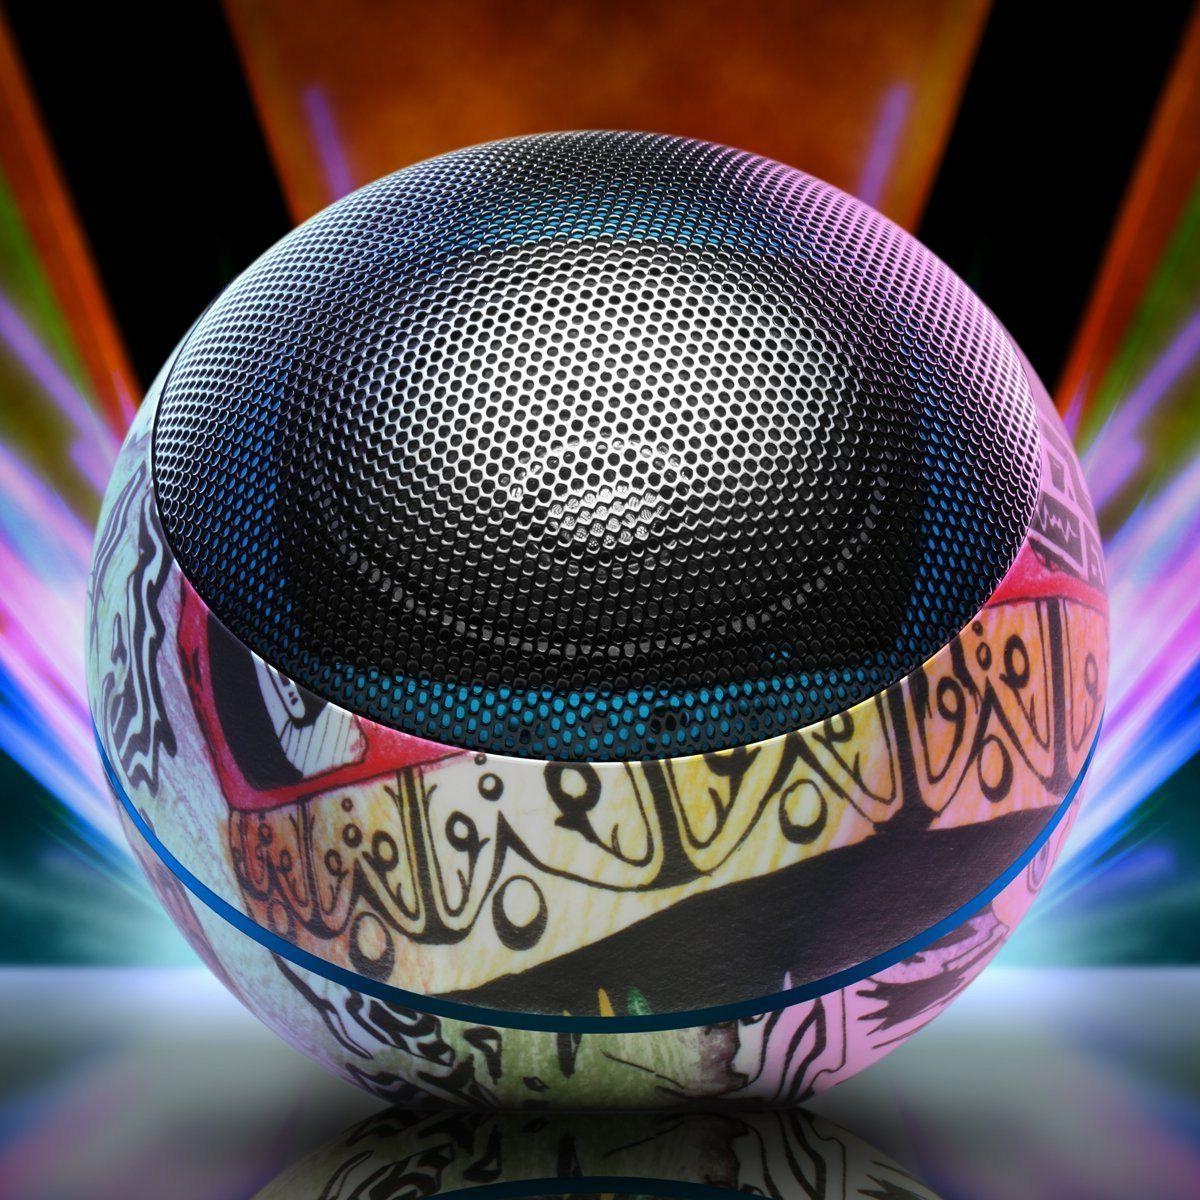 Dance Music Bluetooth Travel Speaker 32 Hour Rechargeable Battery by